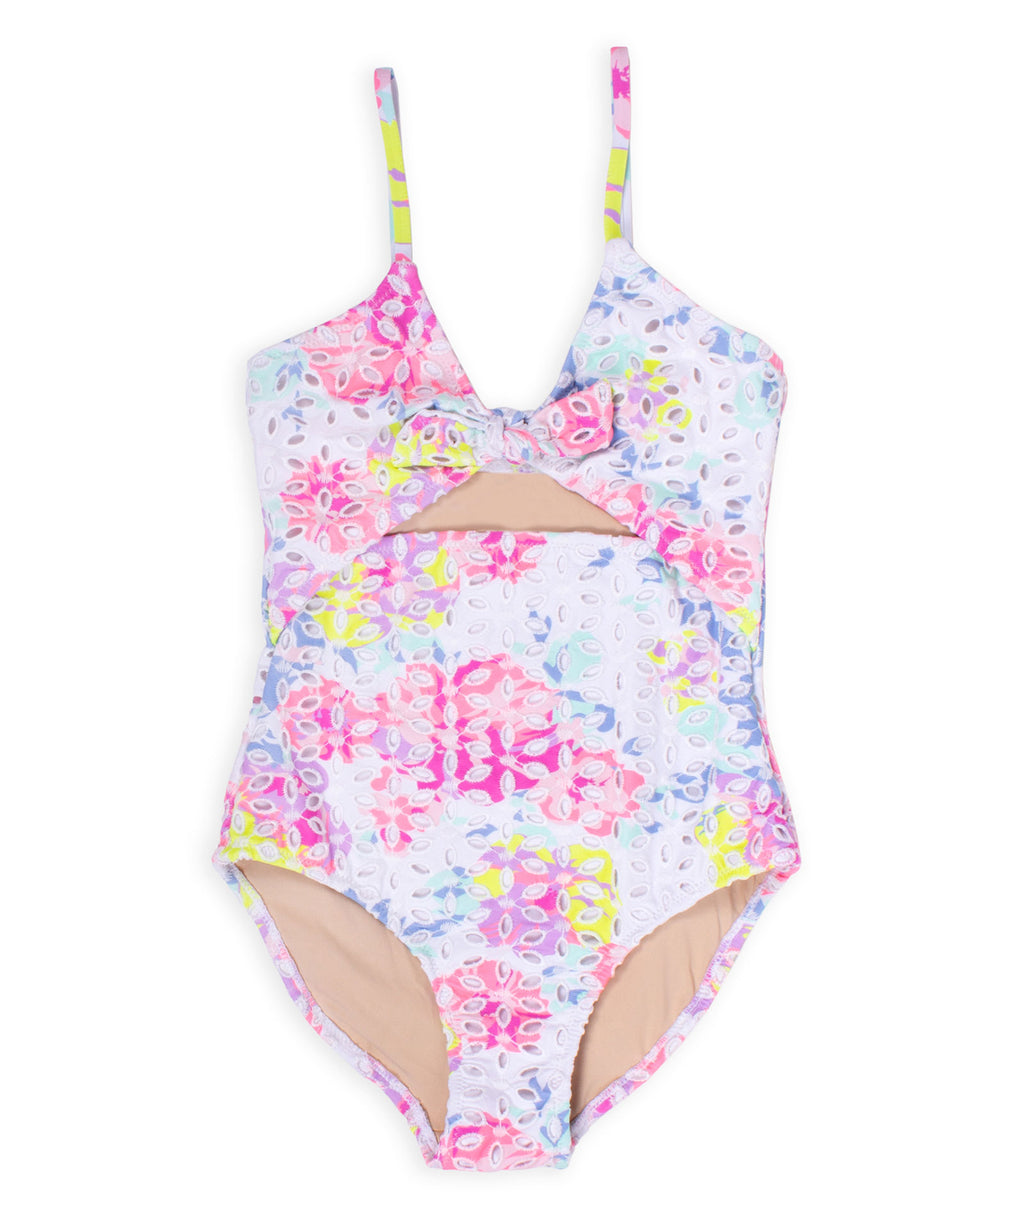 Shade Critters Girls Monokini Floral Eyelet